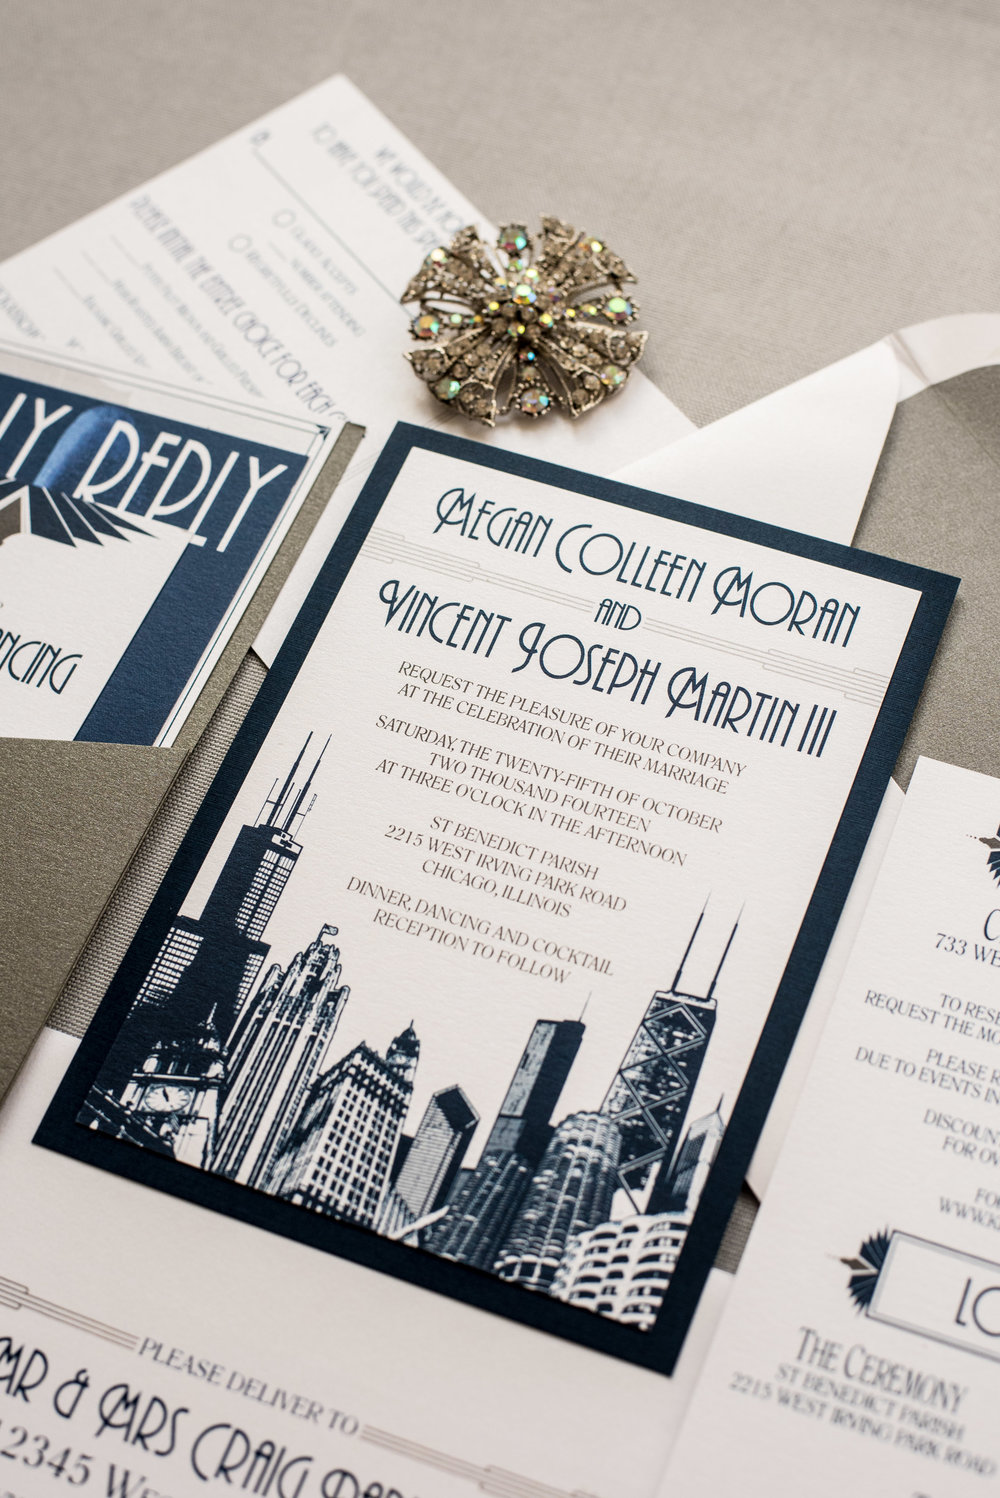 Chicago Wedding Invitation with Skyline, Cityscape, Map, and Fountain with an Art Deco Theme in Navy and Silver in a Pocket Invite by Ashley Parker Creative